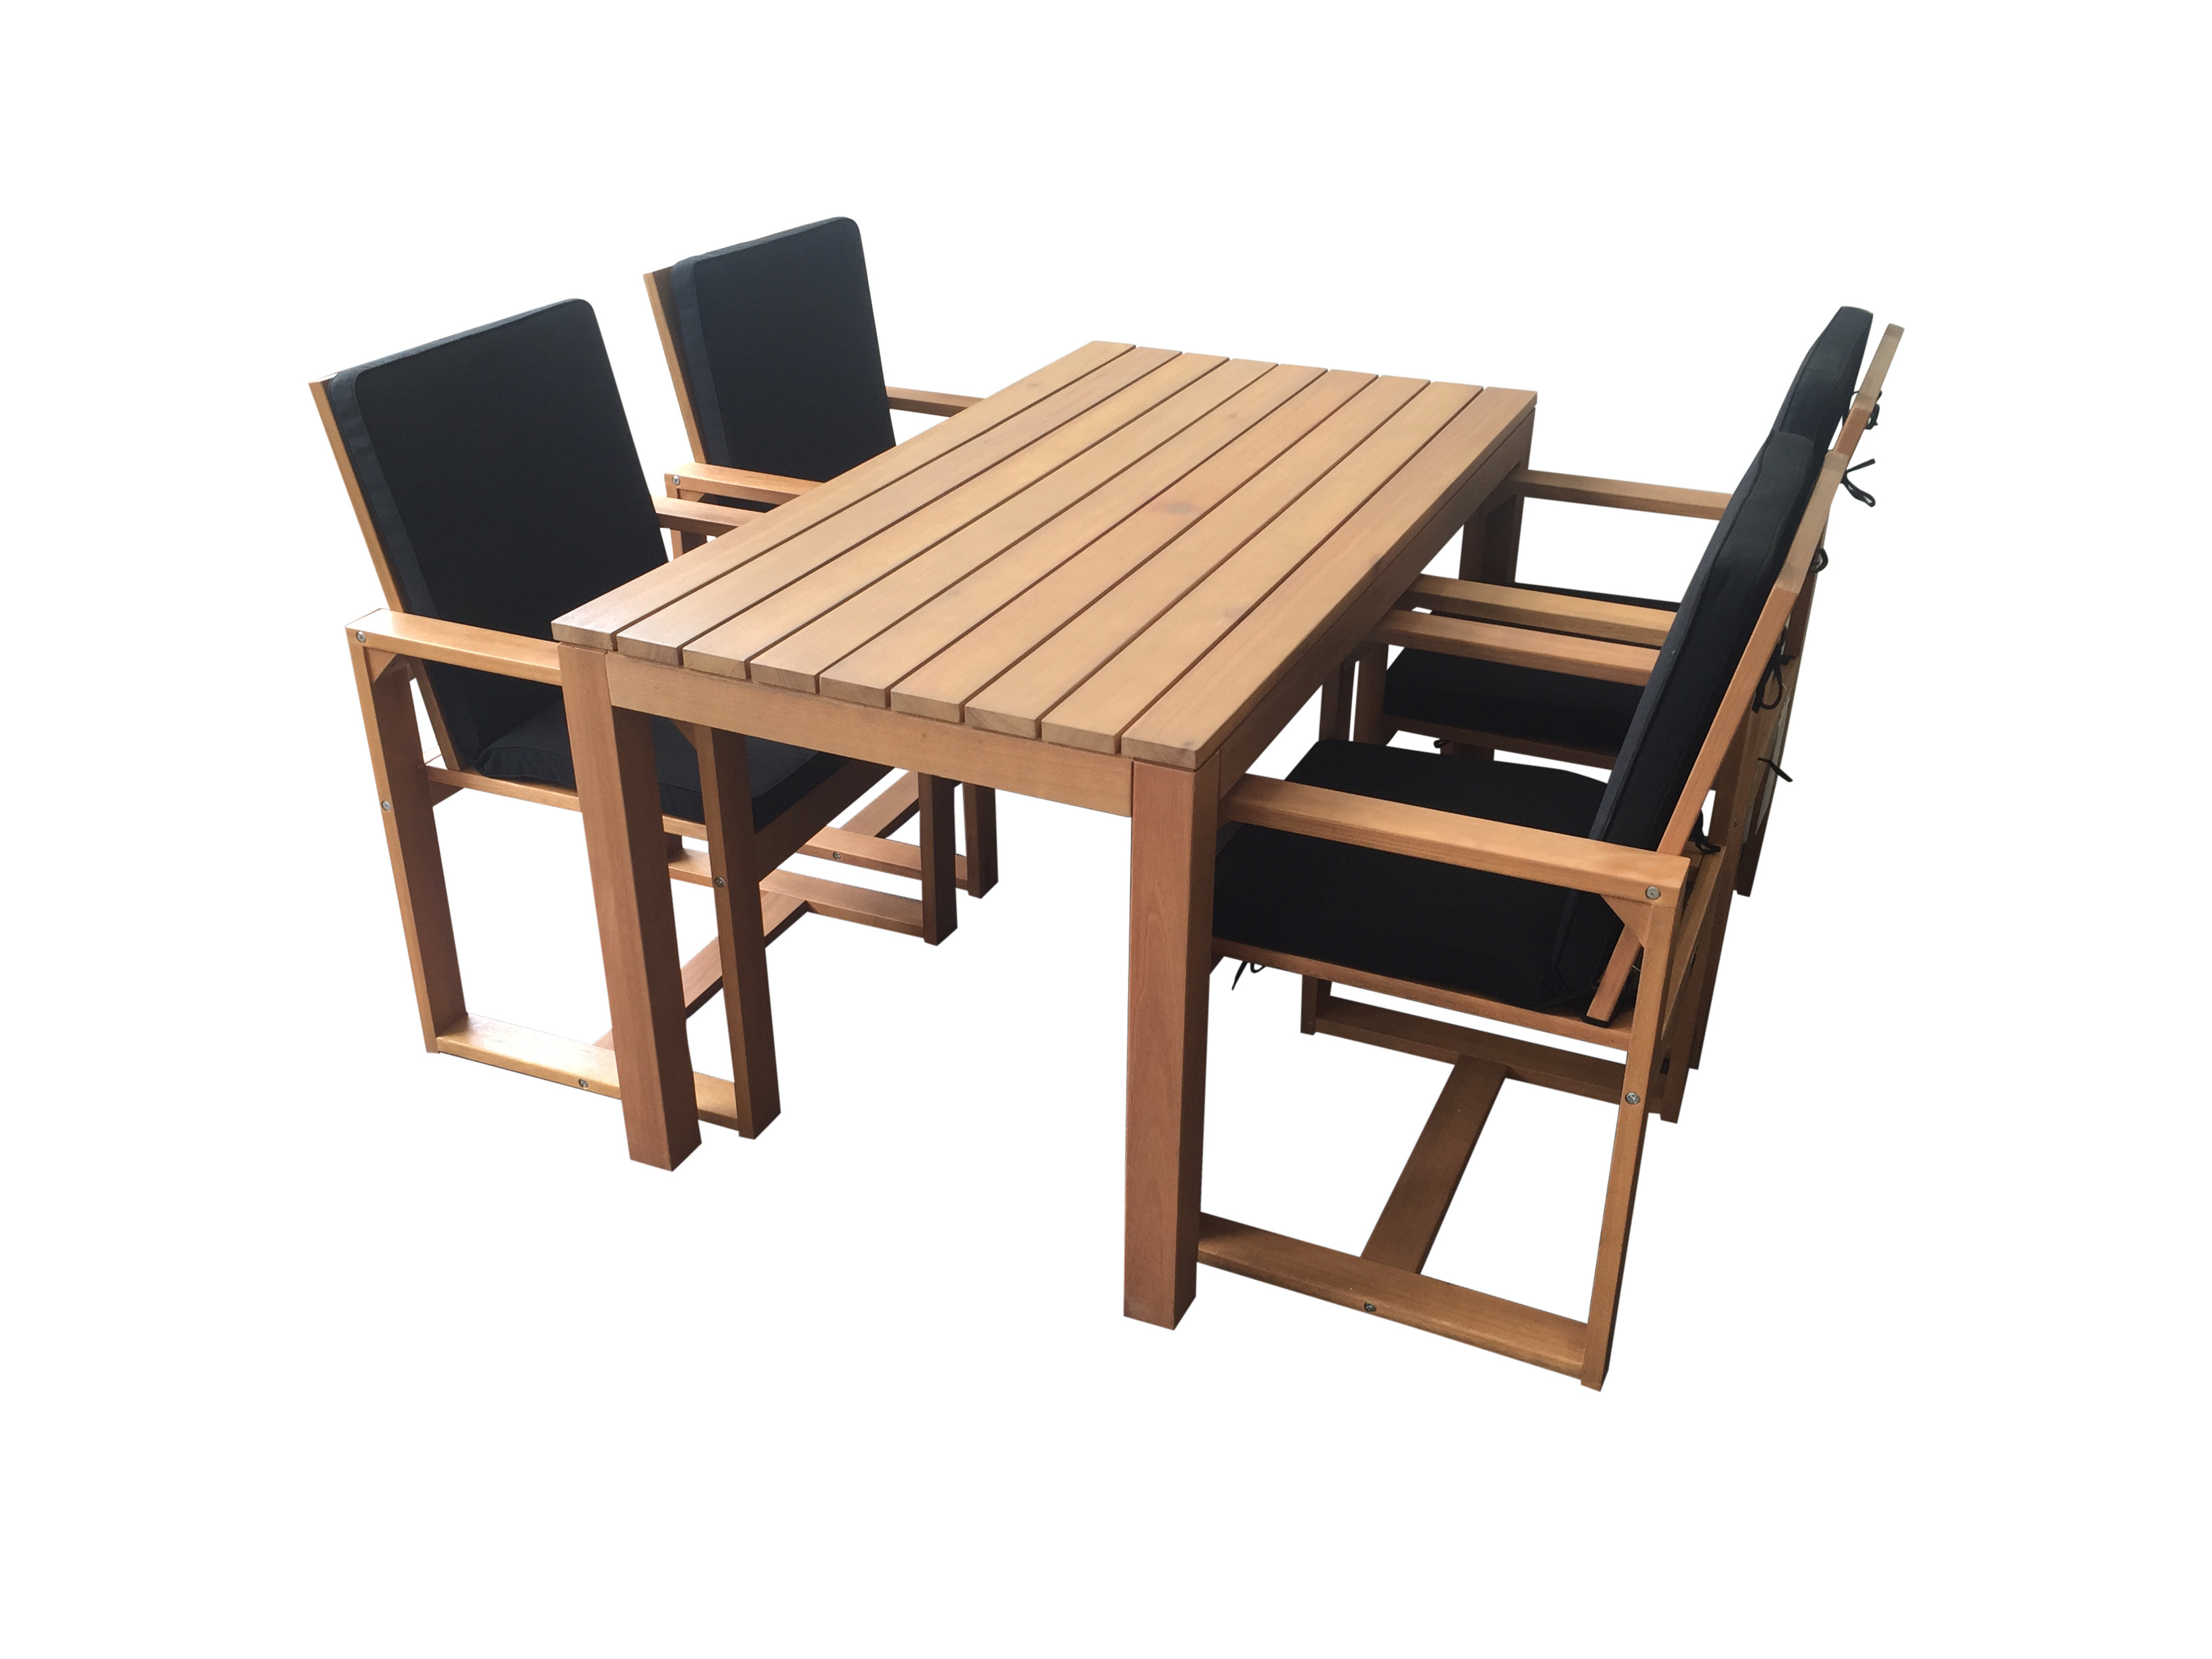 timber outdoor furniture buy the best outdoor timber furniture ... RVYTEQG